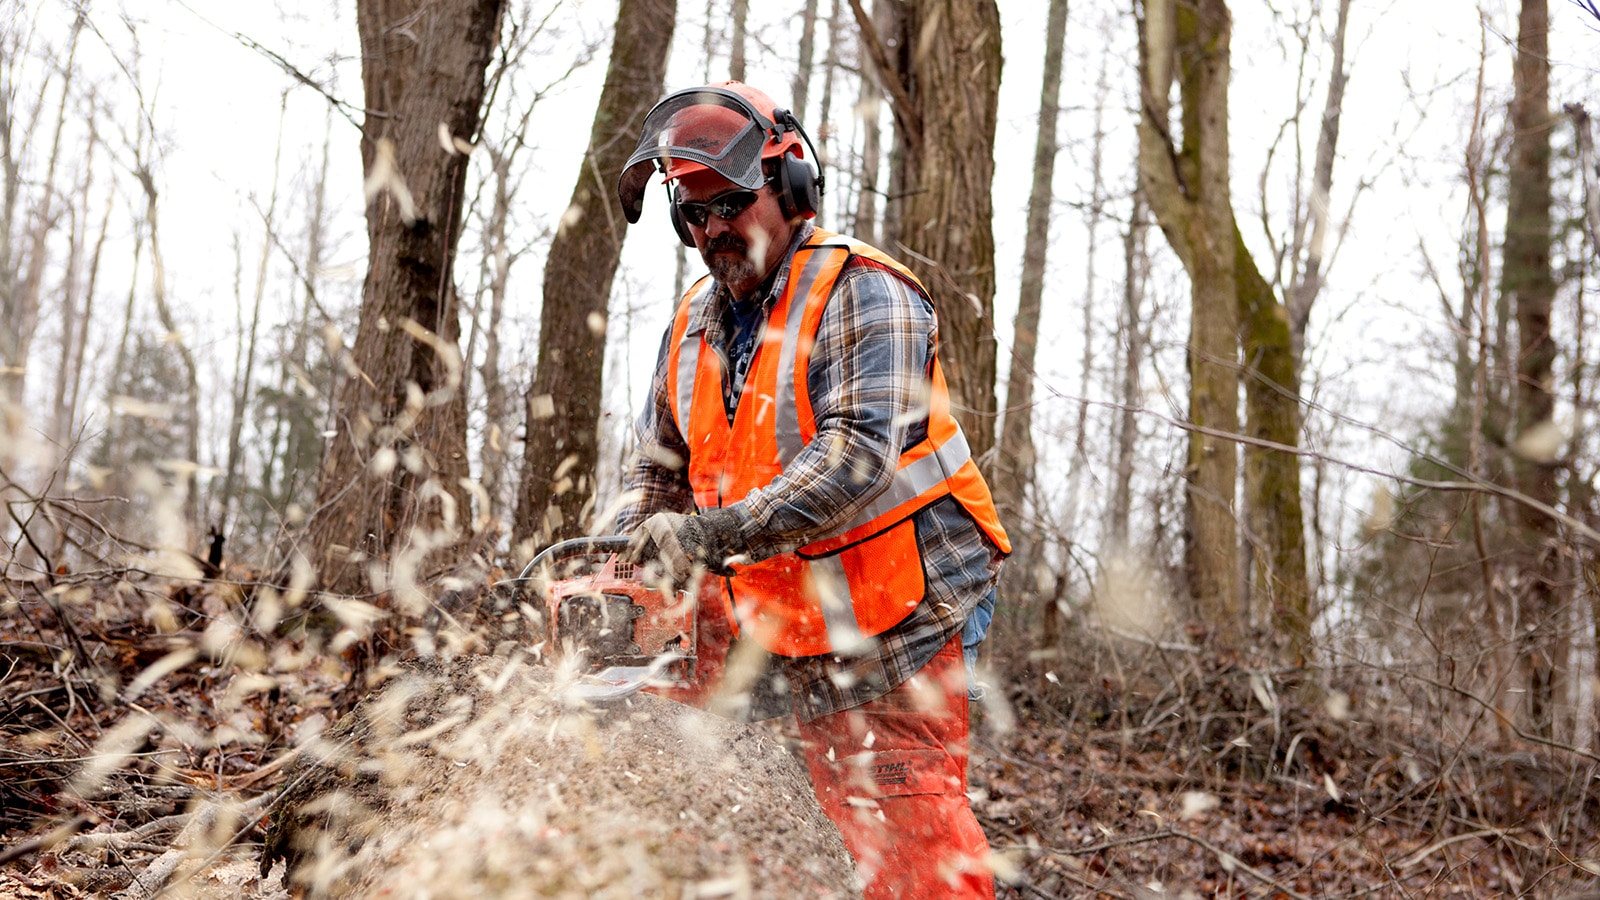 Danny Richards uses a chainsaw to cut through a log